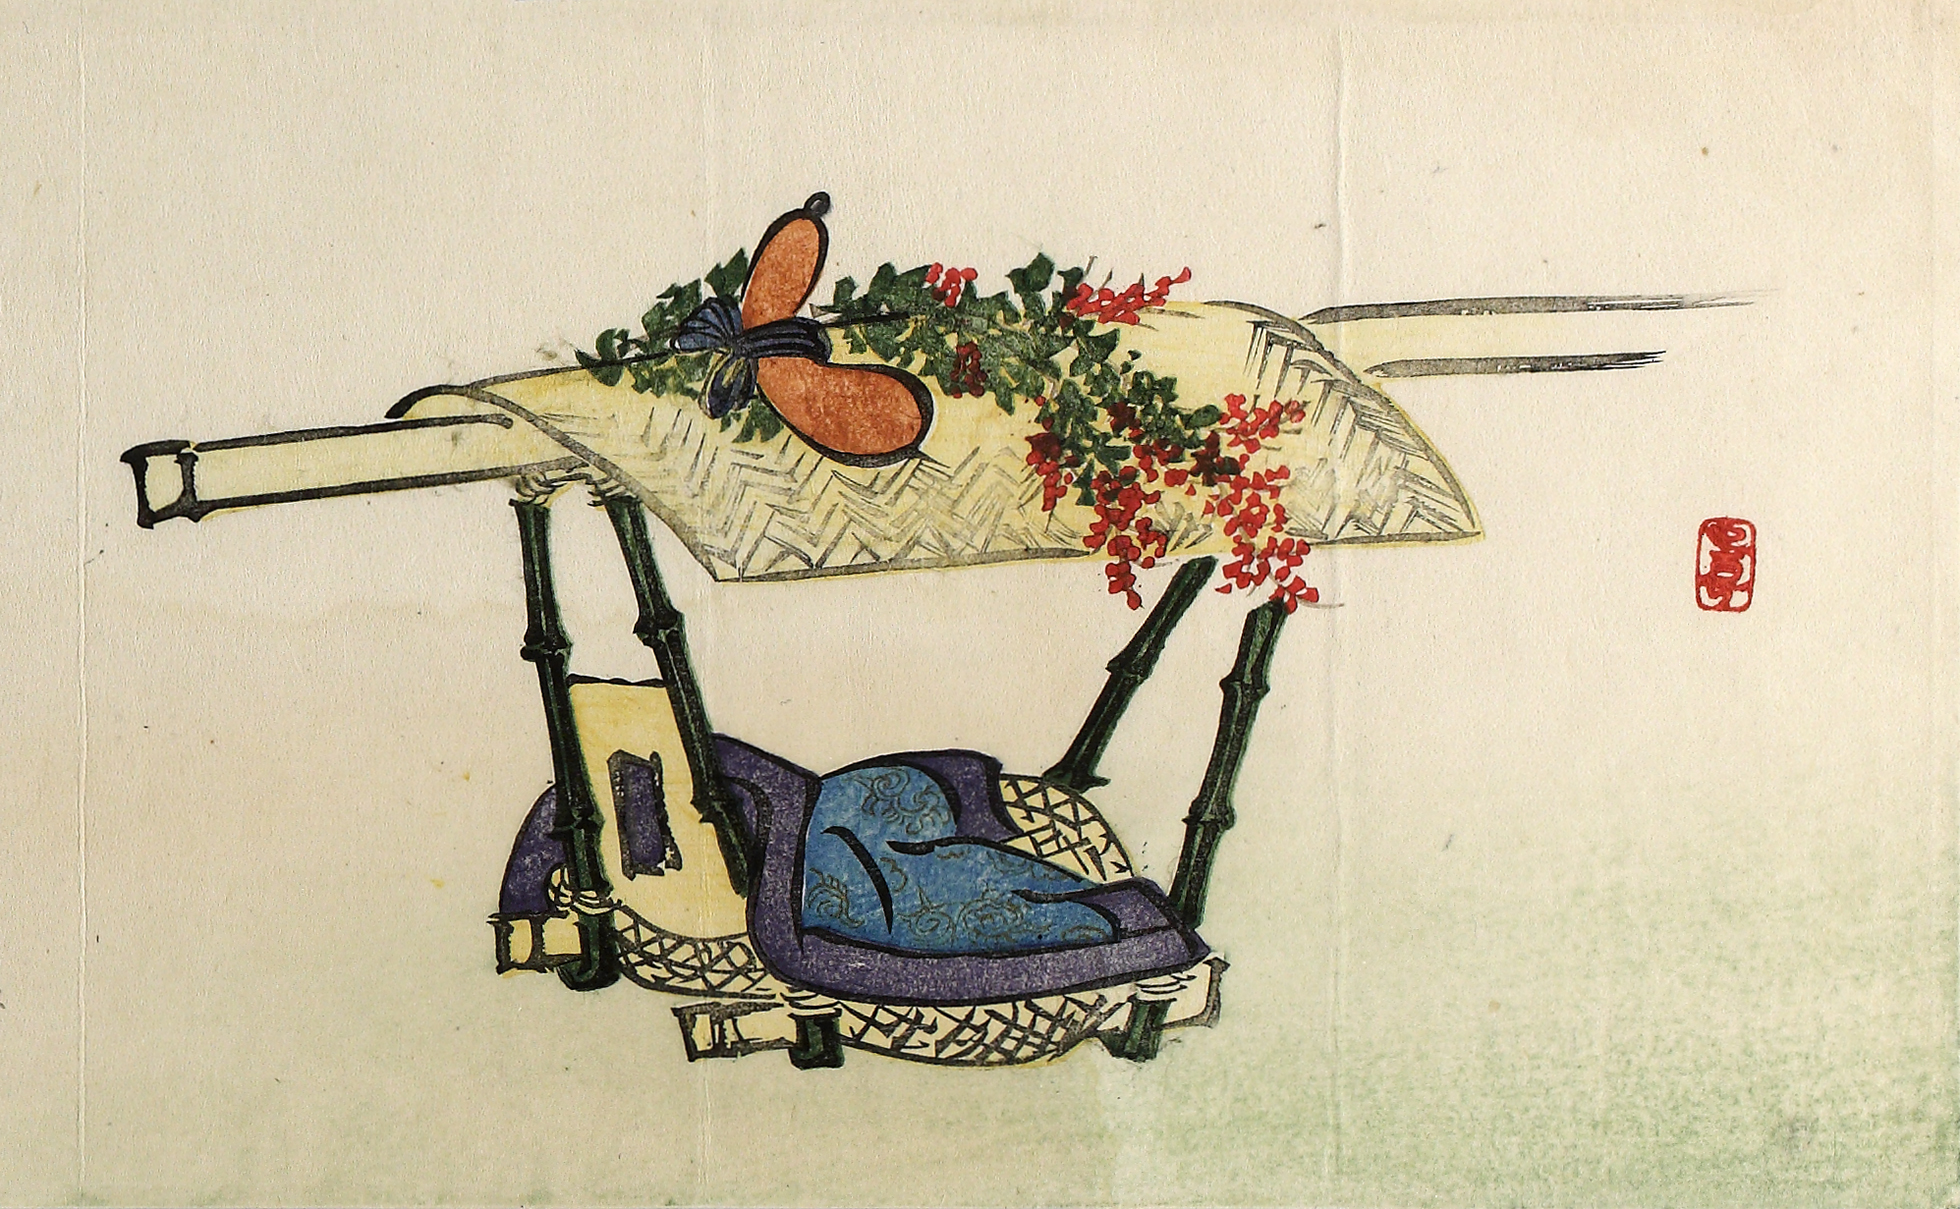 A colour woodblock print of a sedan chair (kago) with a woven roof and a blue cushion on the chair.